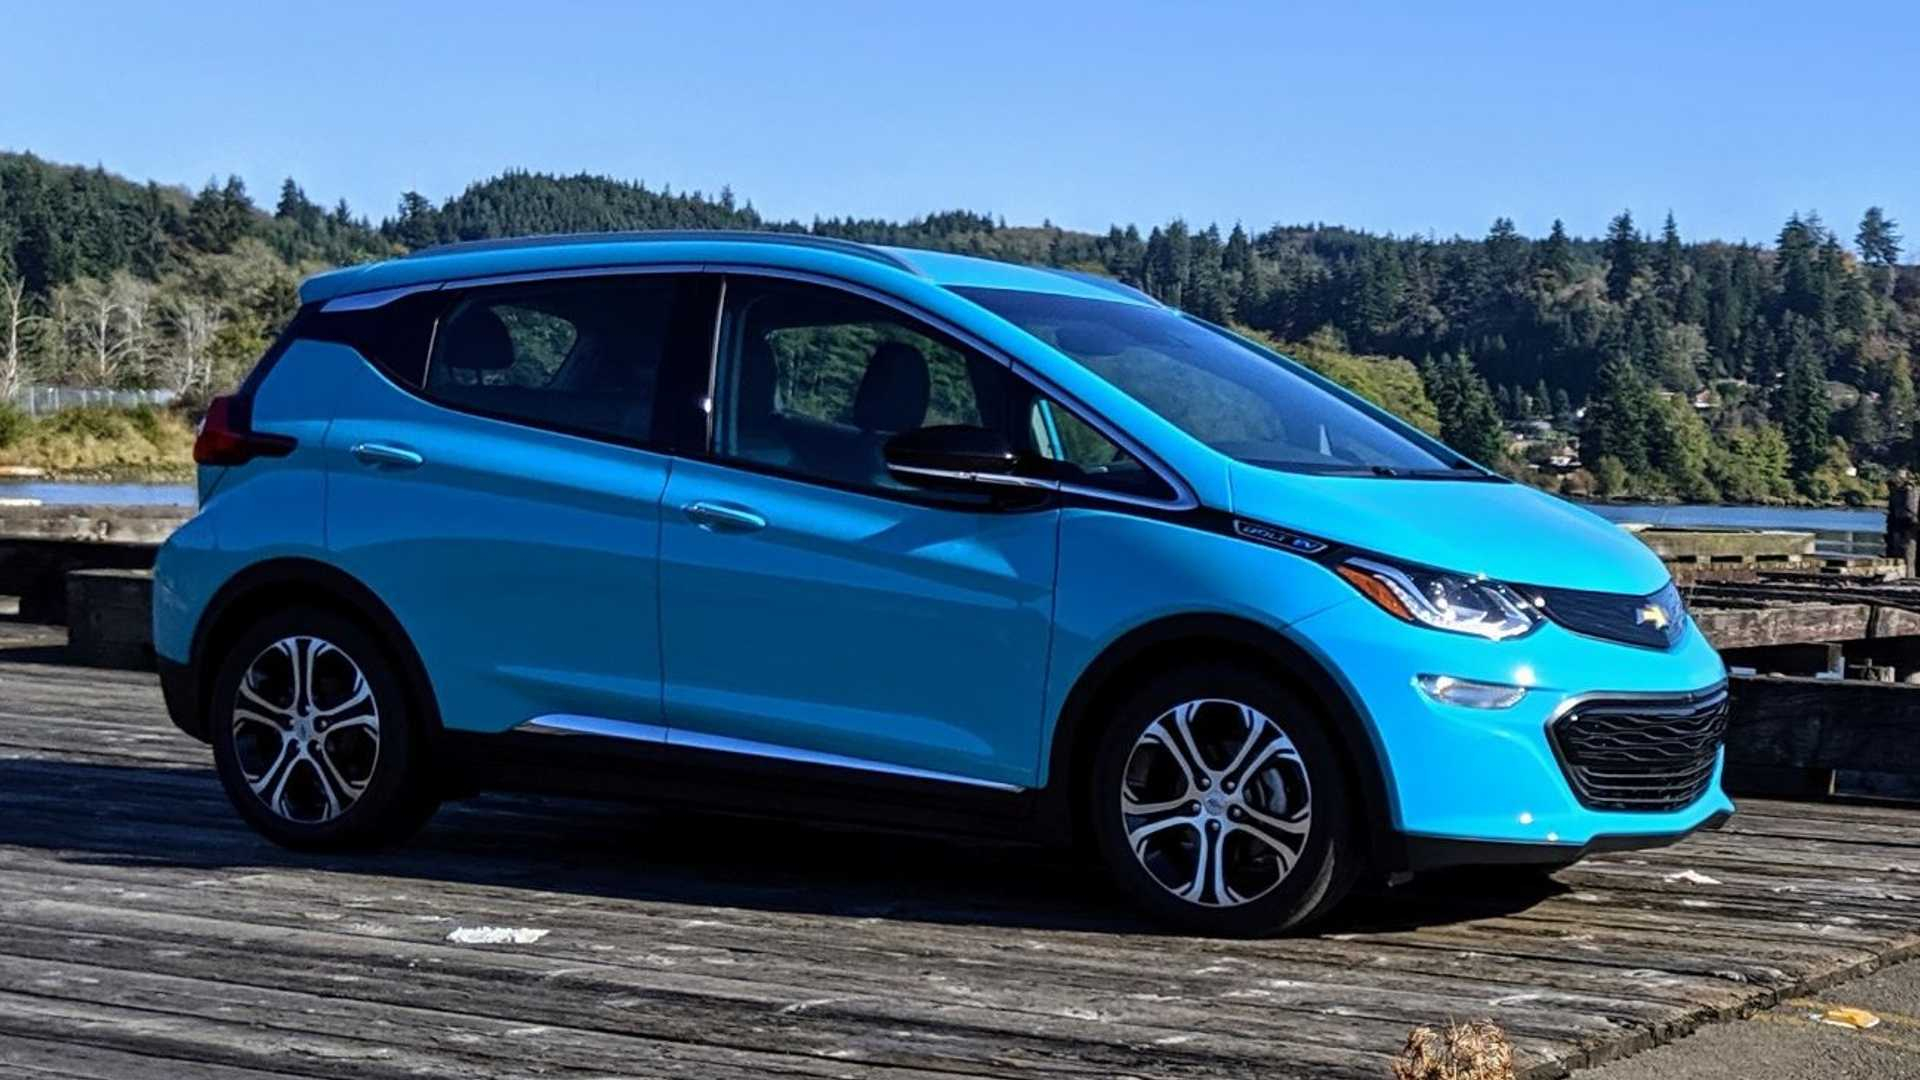 2021 Chevy Bolt: Everything We Know - Interior, Seats, Range 2021 Chevy Bolt Ev Review, Specs, Price